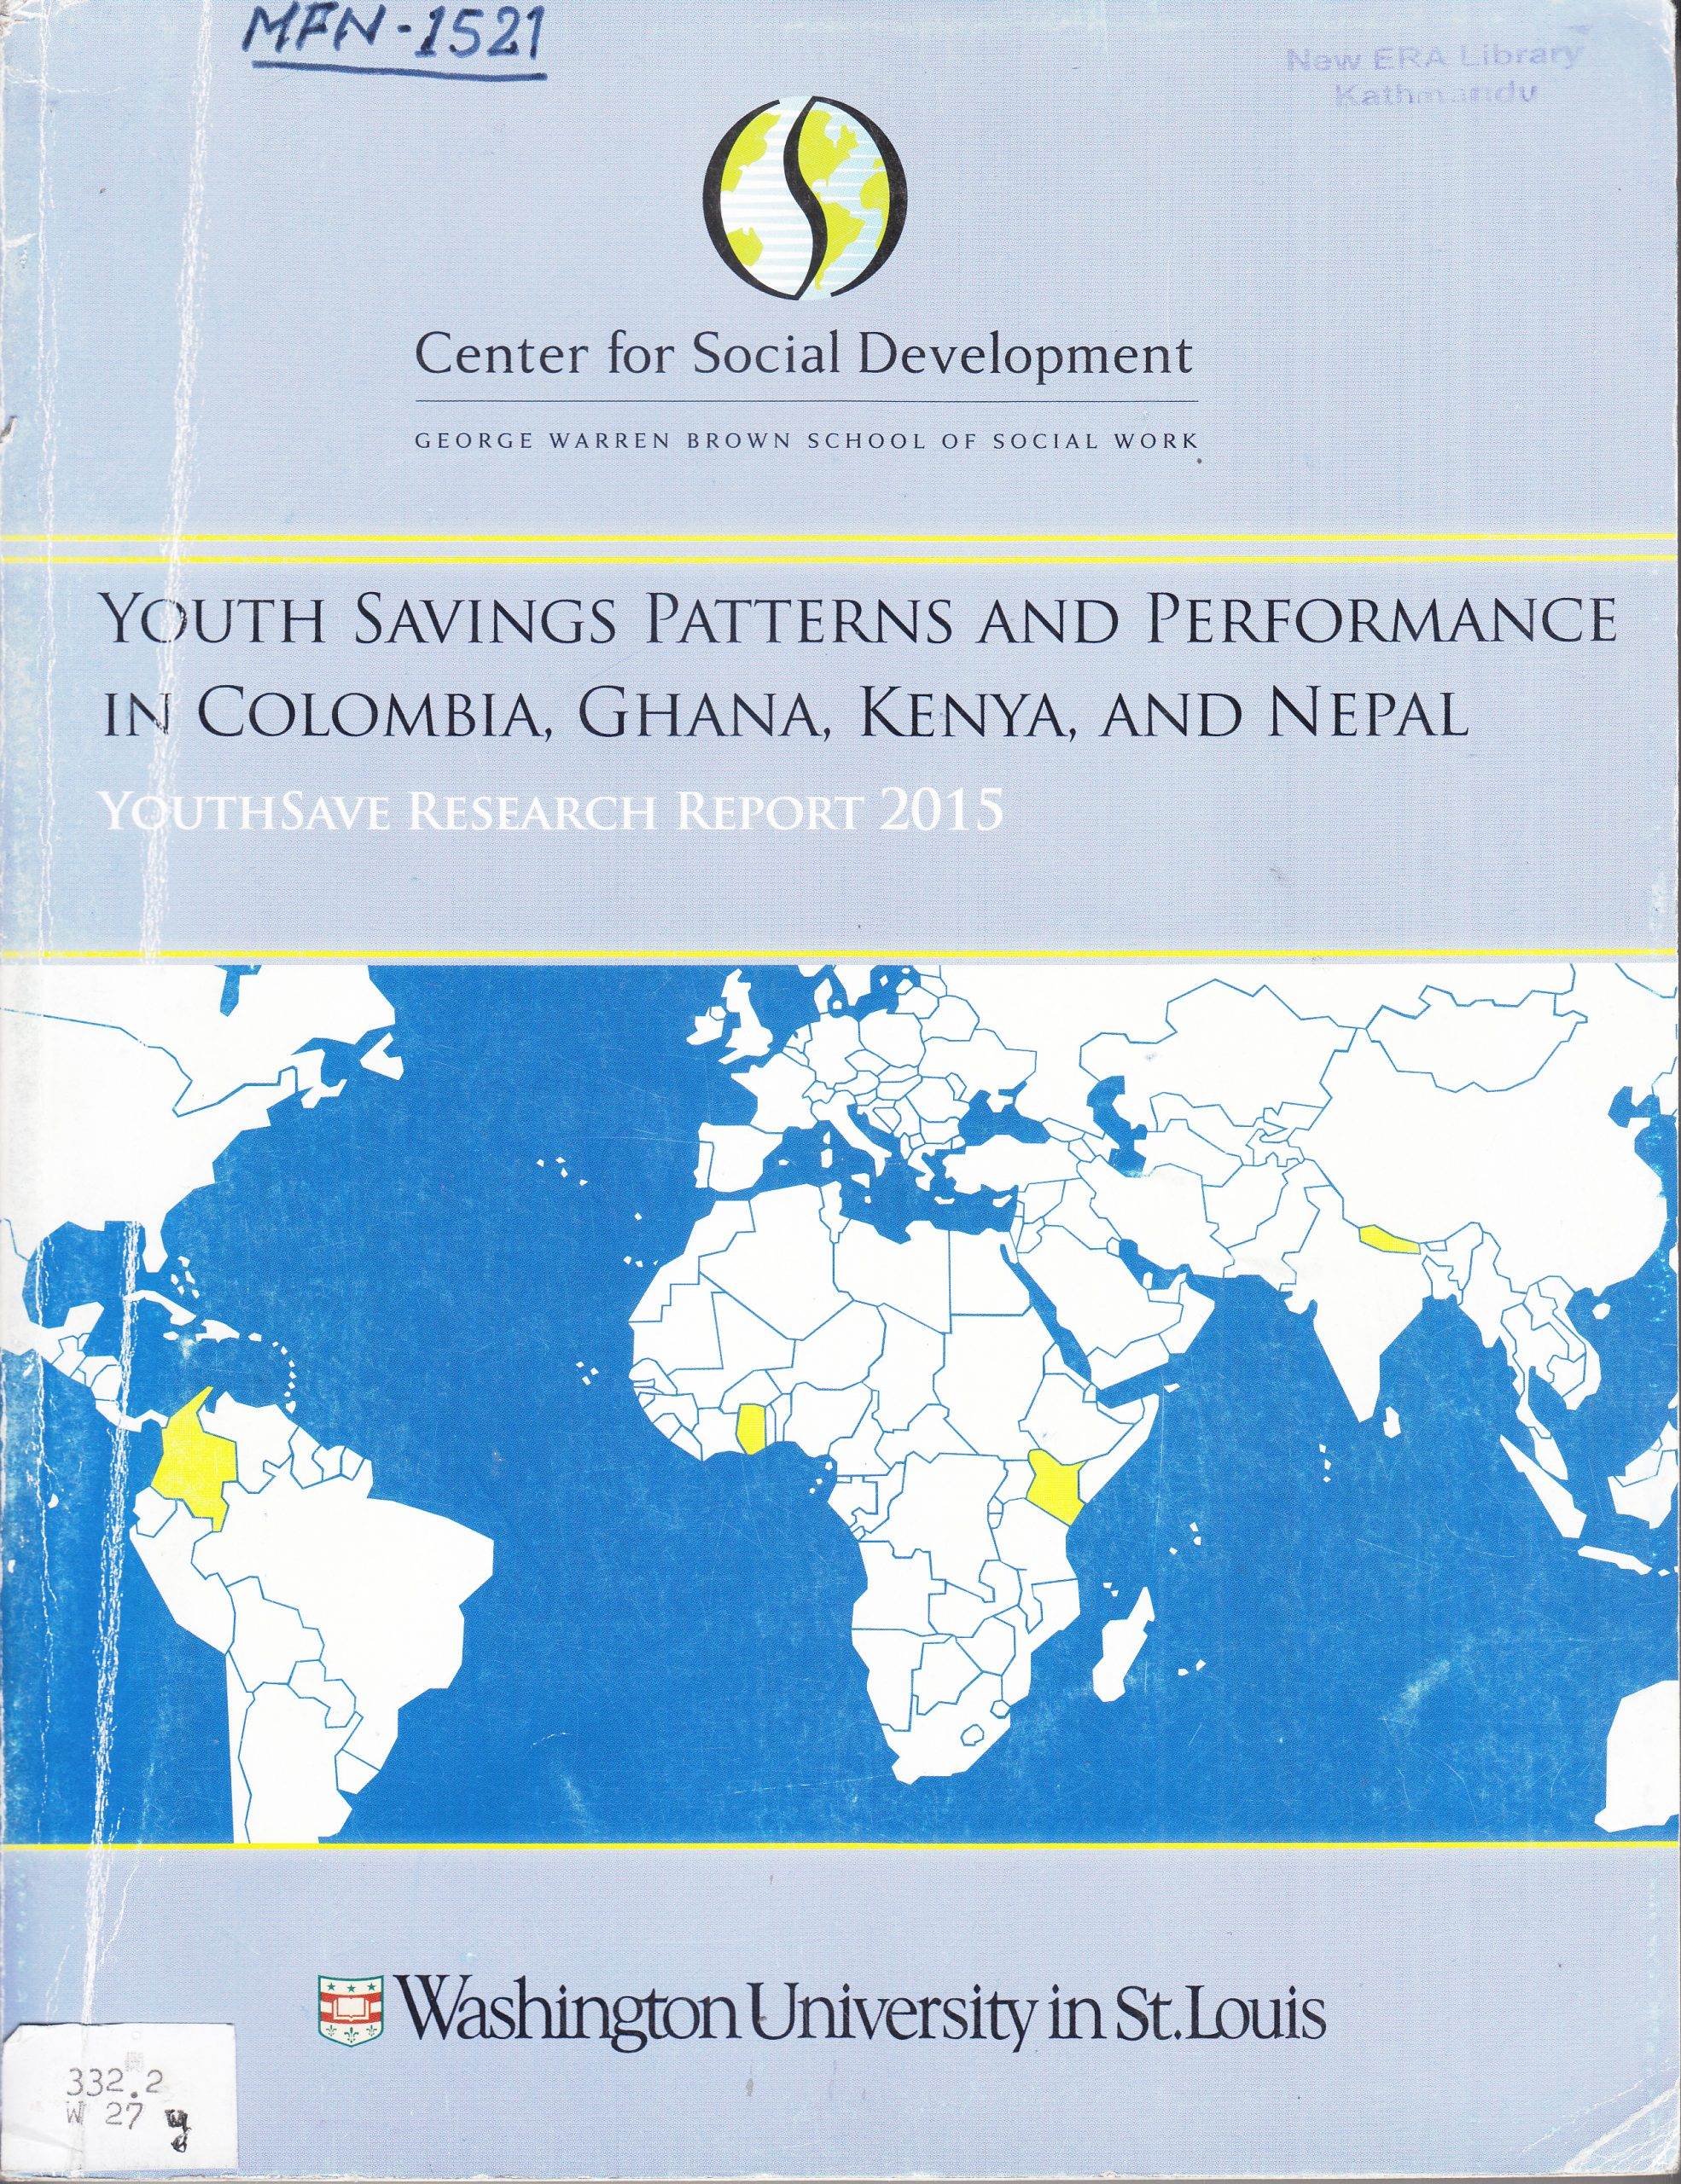 Youth Savings Patterns and Performance in Colombia, Ghana, Kenya and Nepal